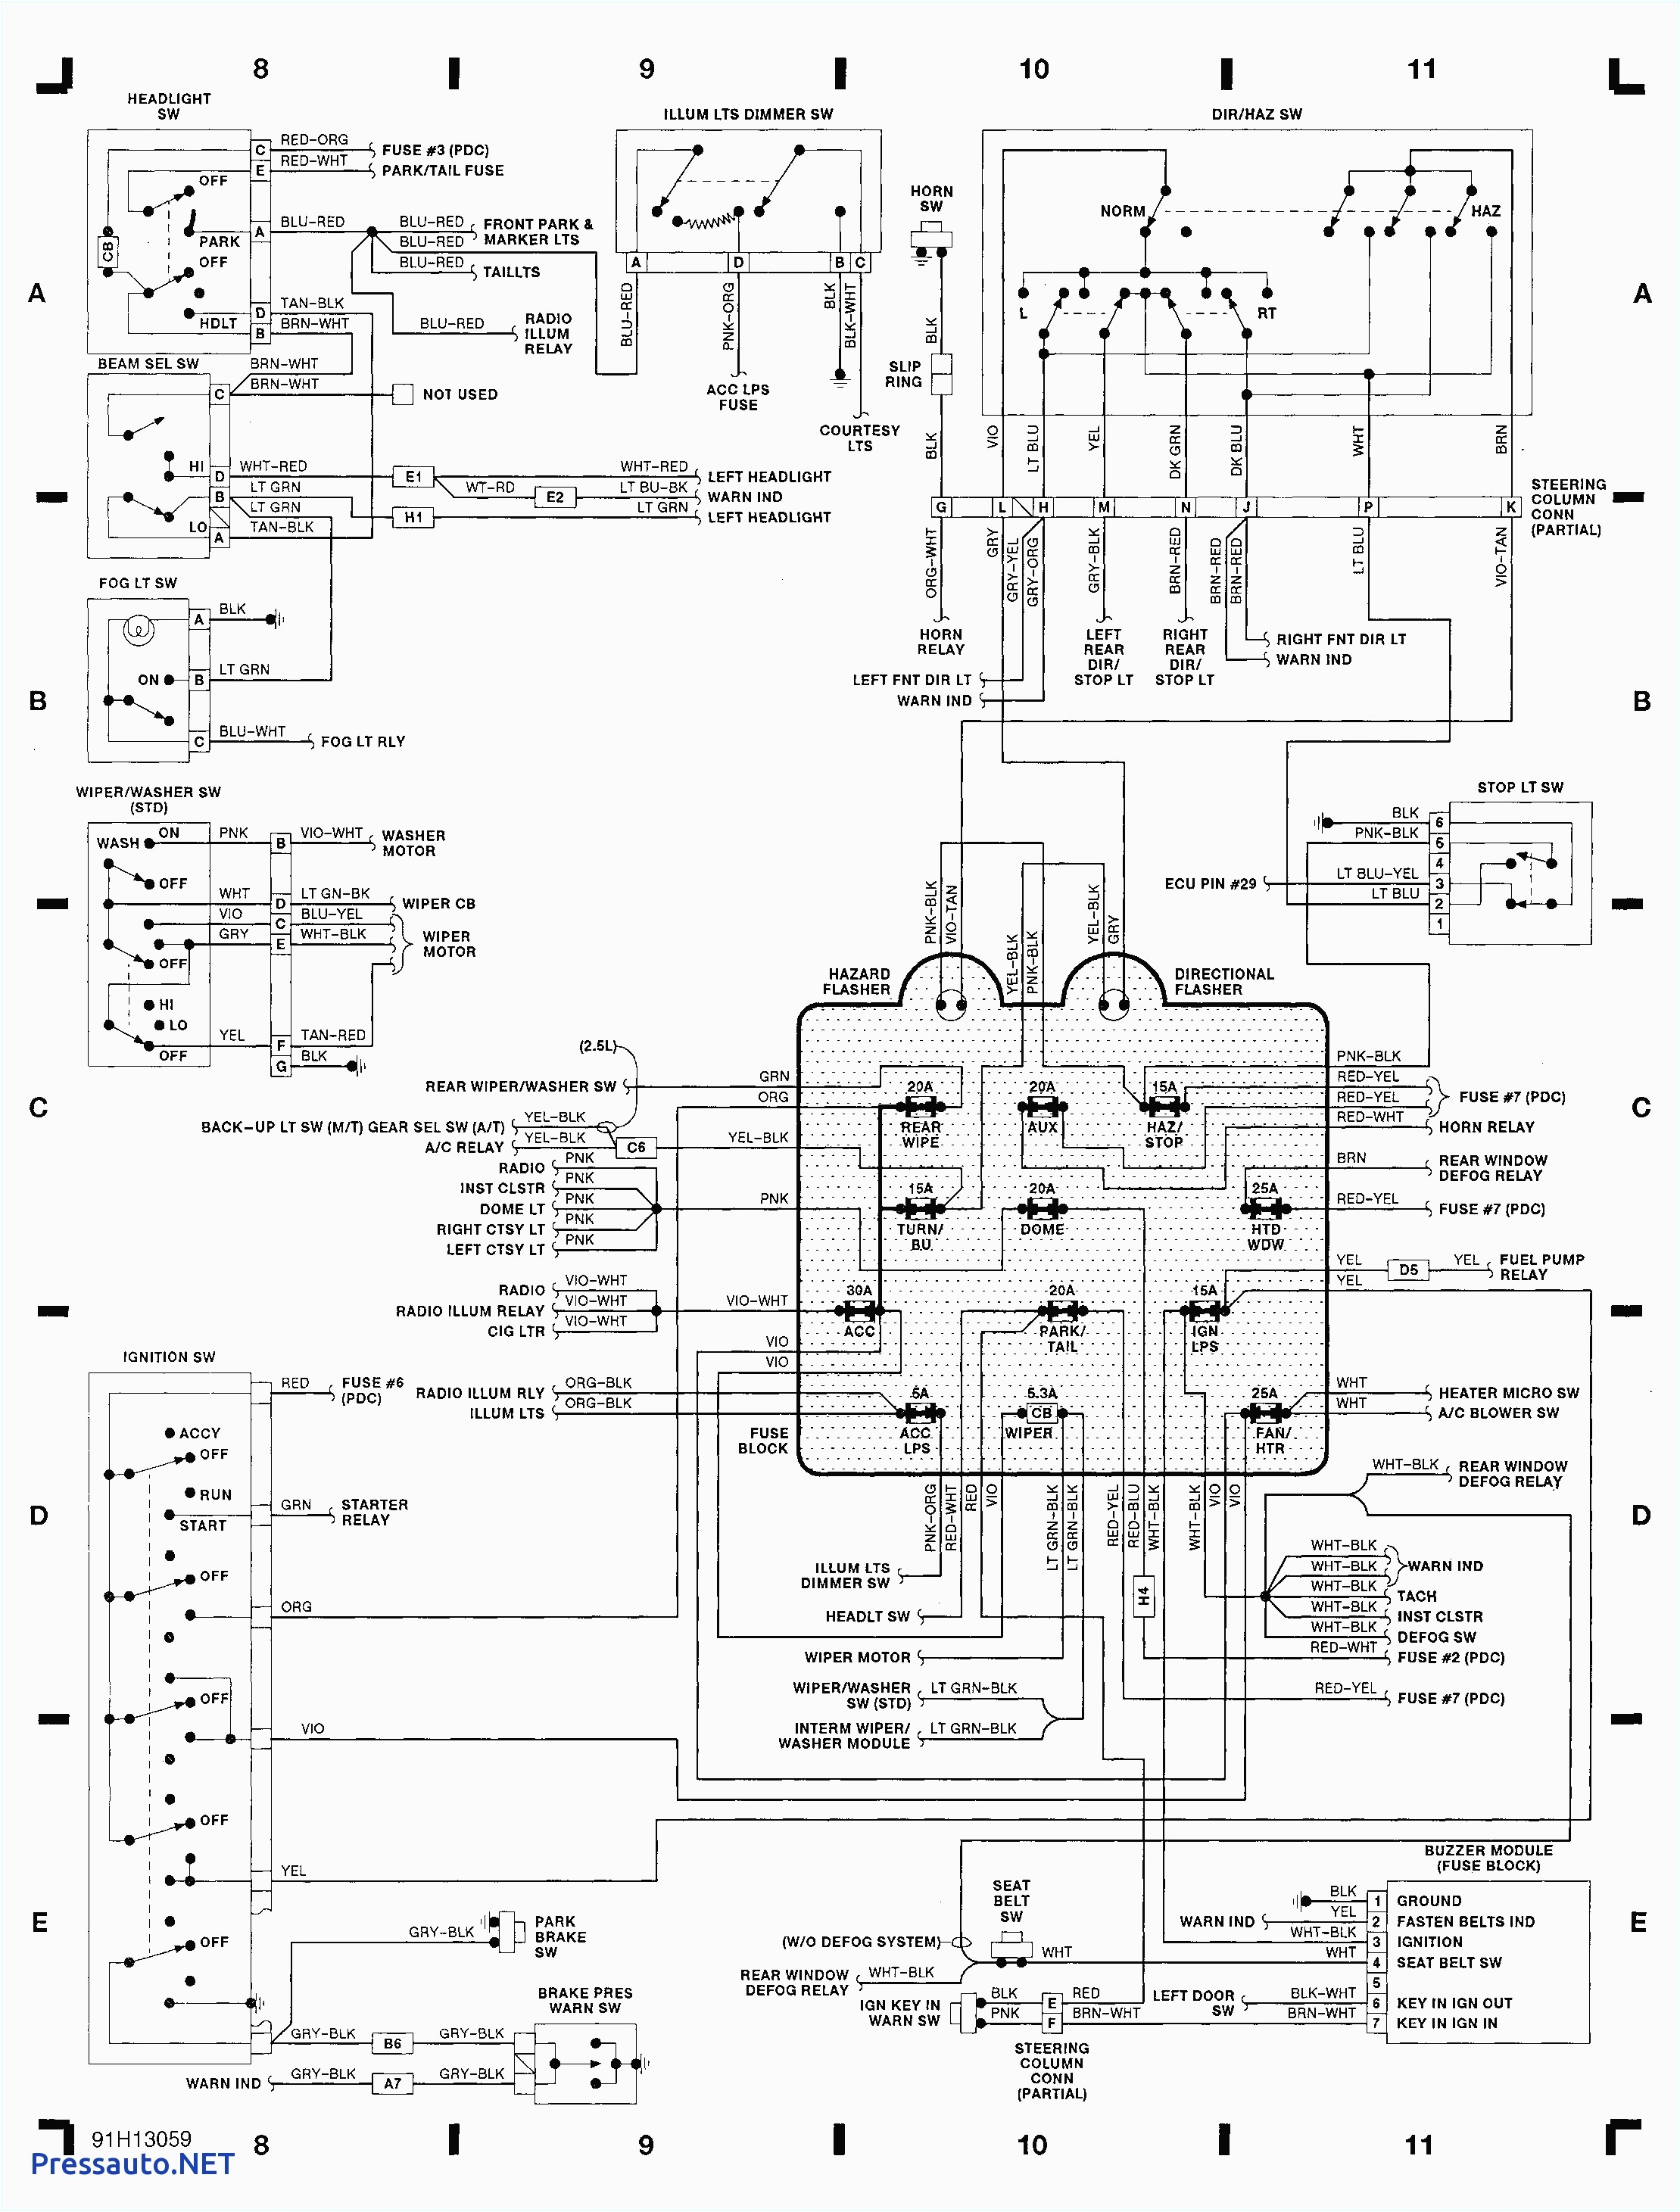 diagram moreover jeep wrangler power steering gear box diagram diagram furthermore jeep wrangler power steering gear box diagram